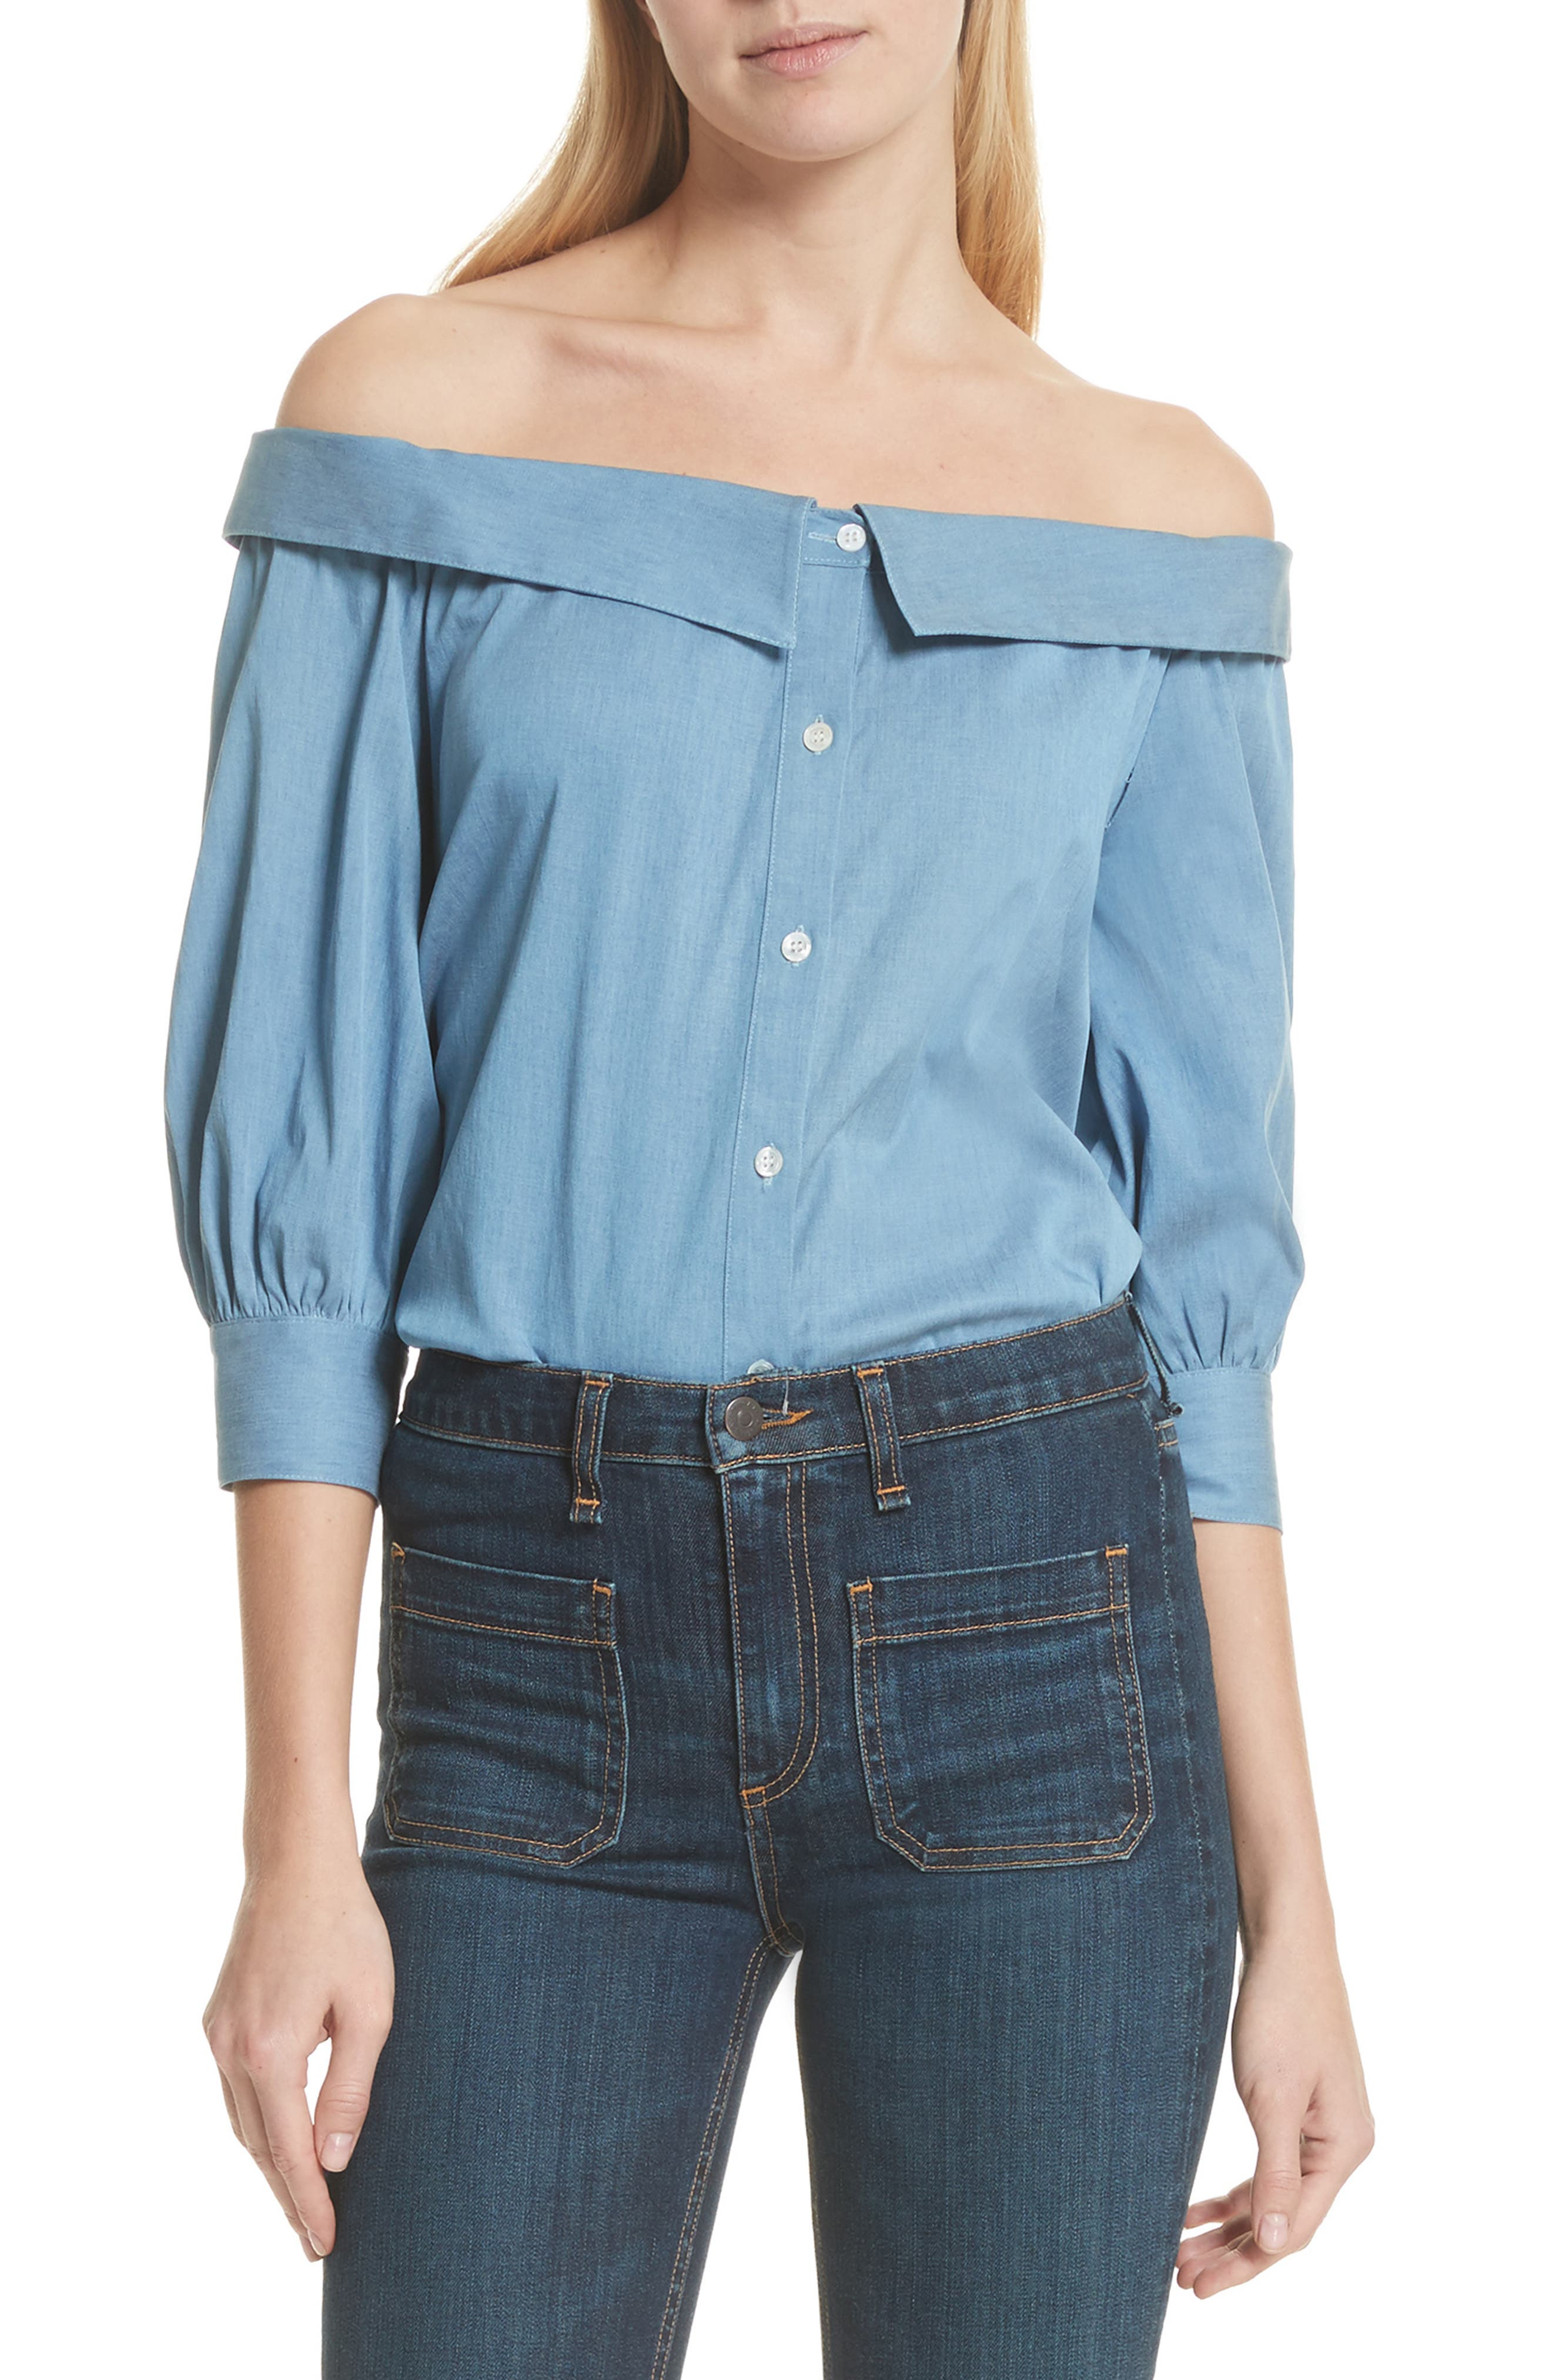 Britta Off the Shoulder Top,                             Main thumbnail 1, color,                             423